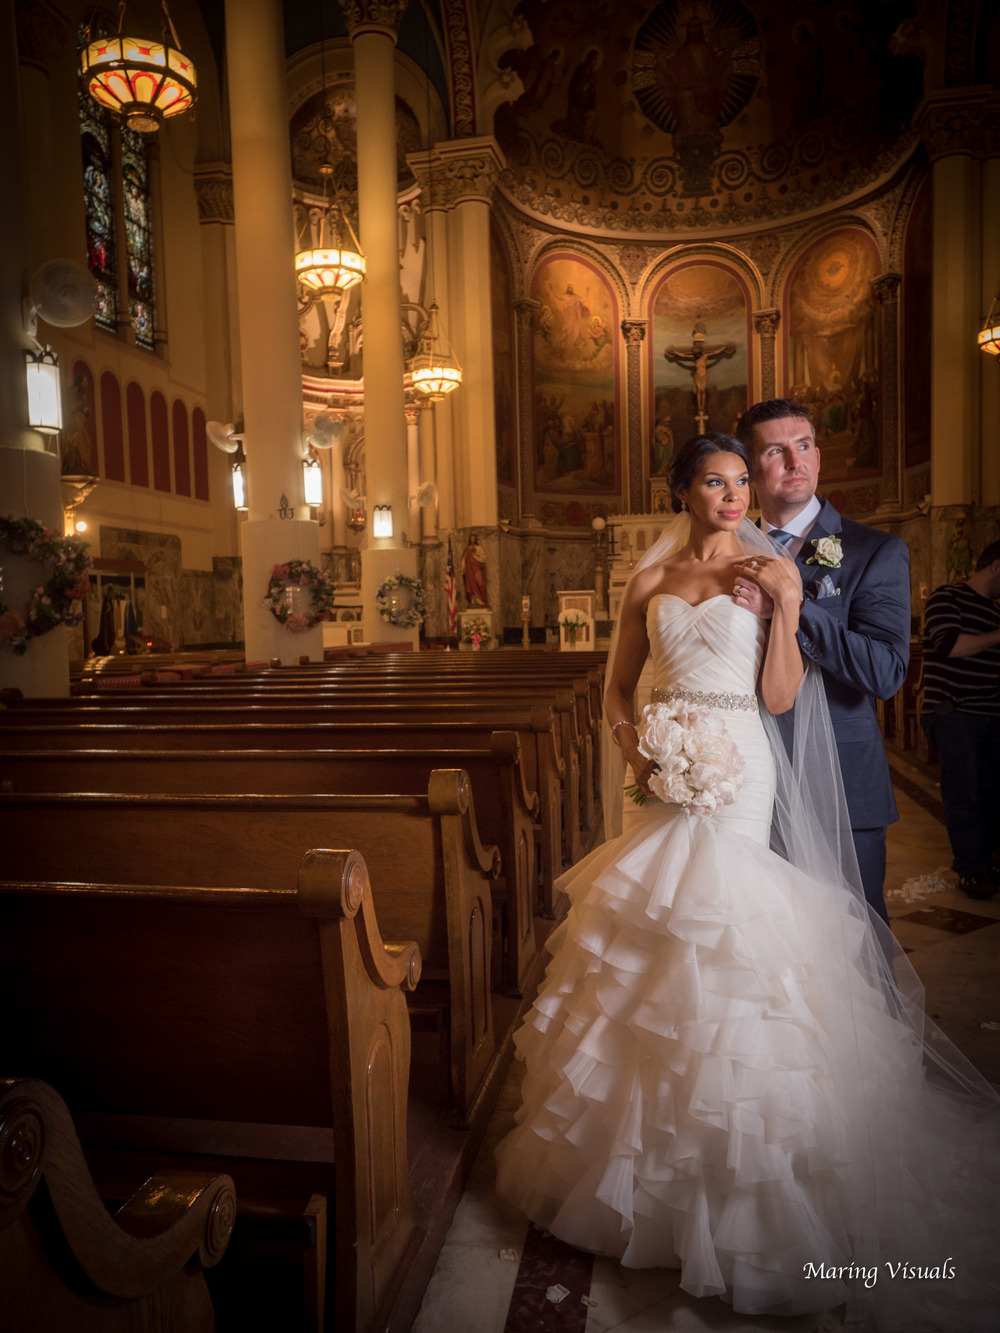 Photos by NYC Wedding Photographers Maring Visuals